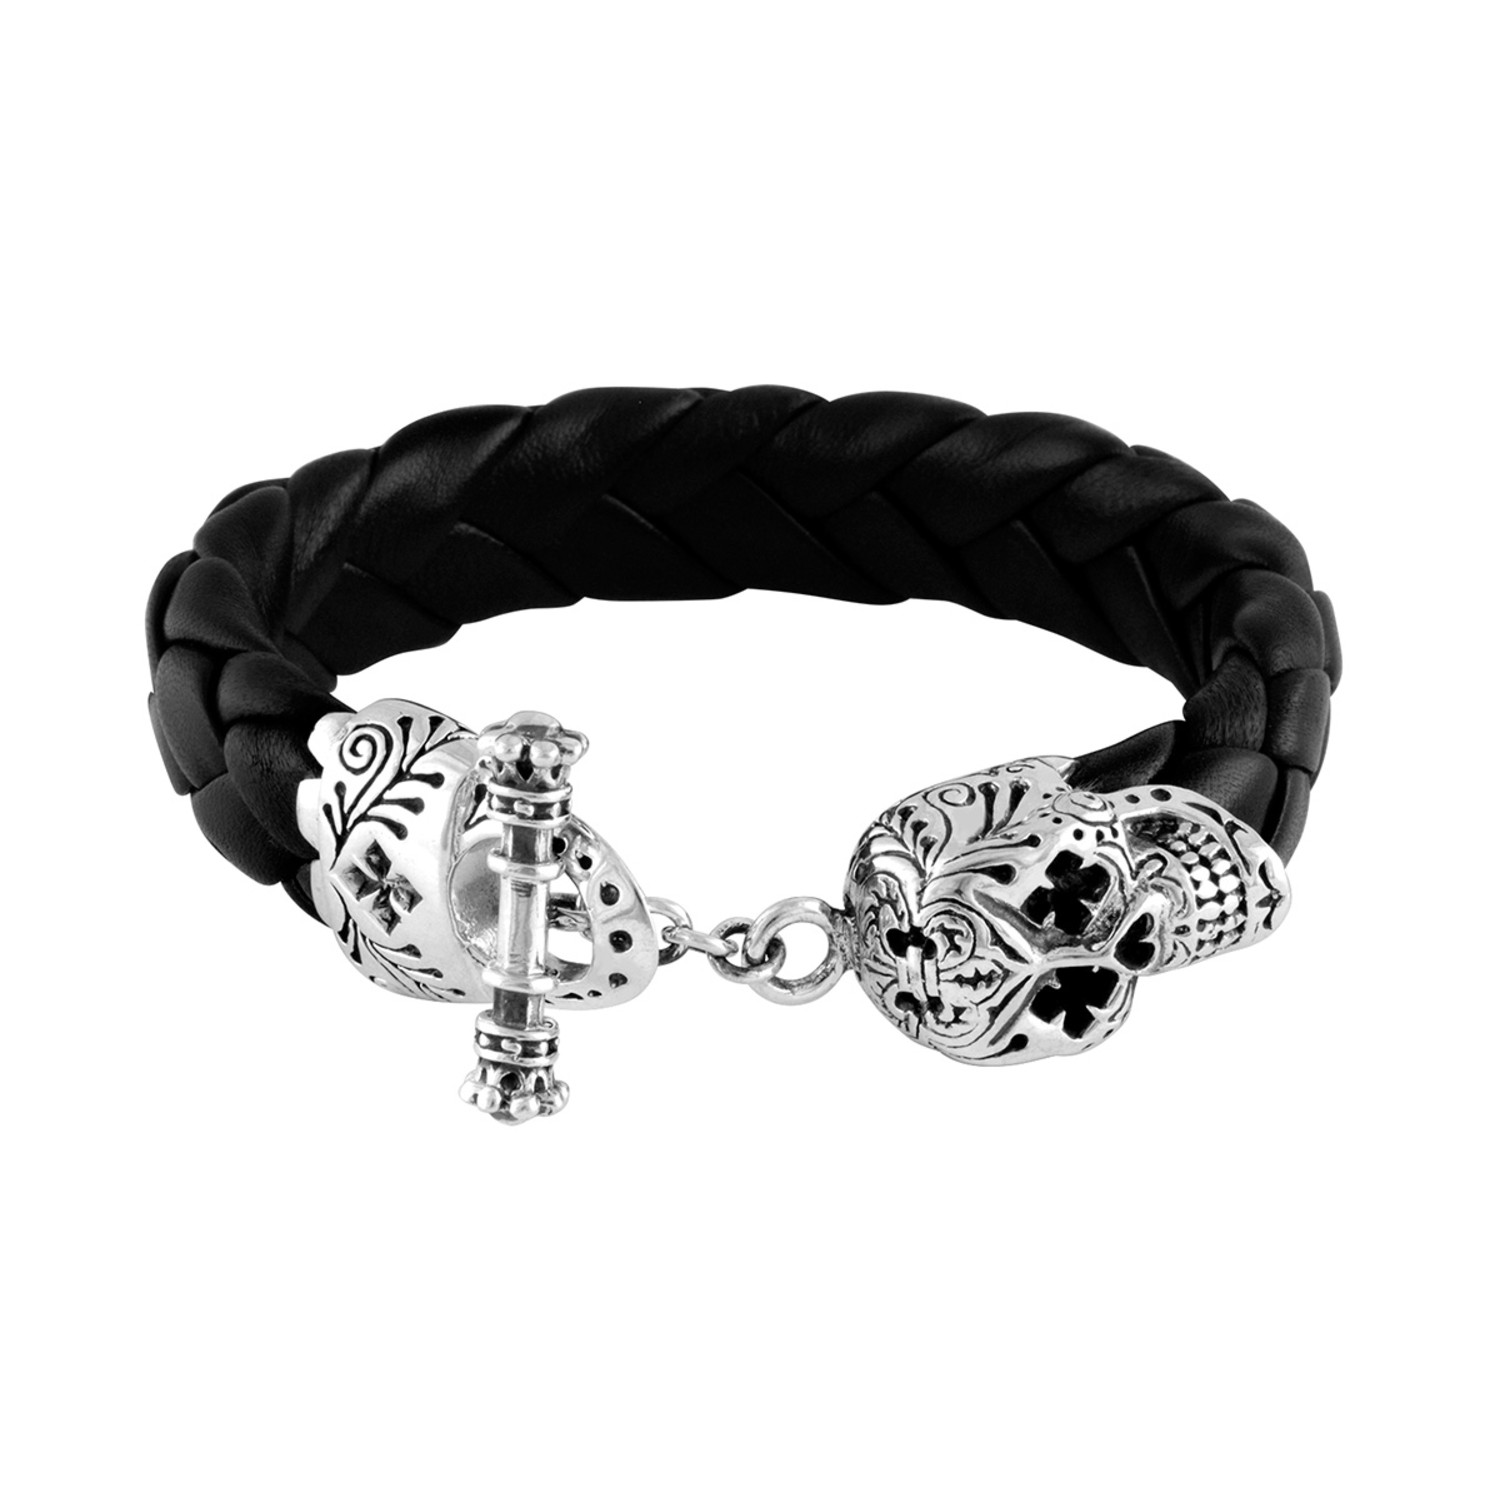 Day of the dead skull bracelet king baby touch of modern for King baby jewelry sale